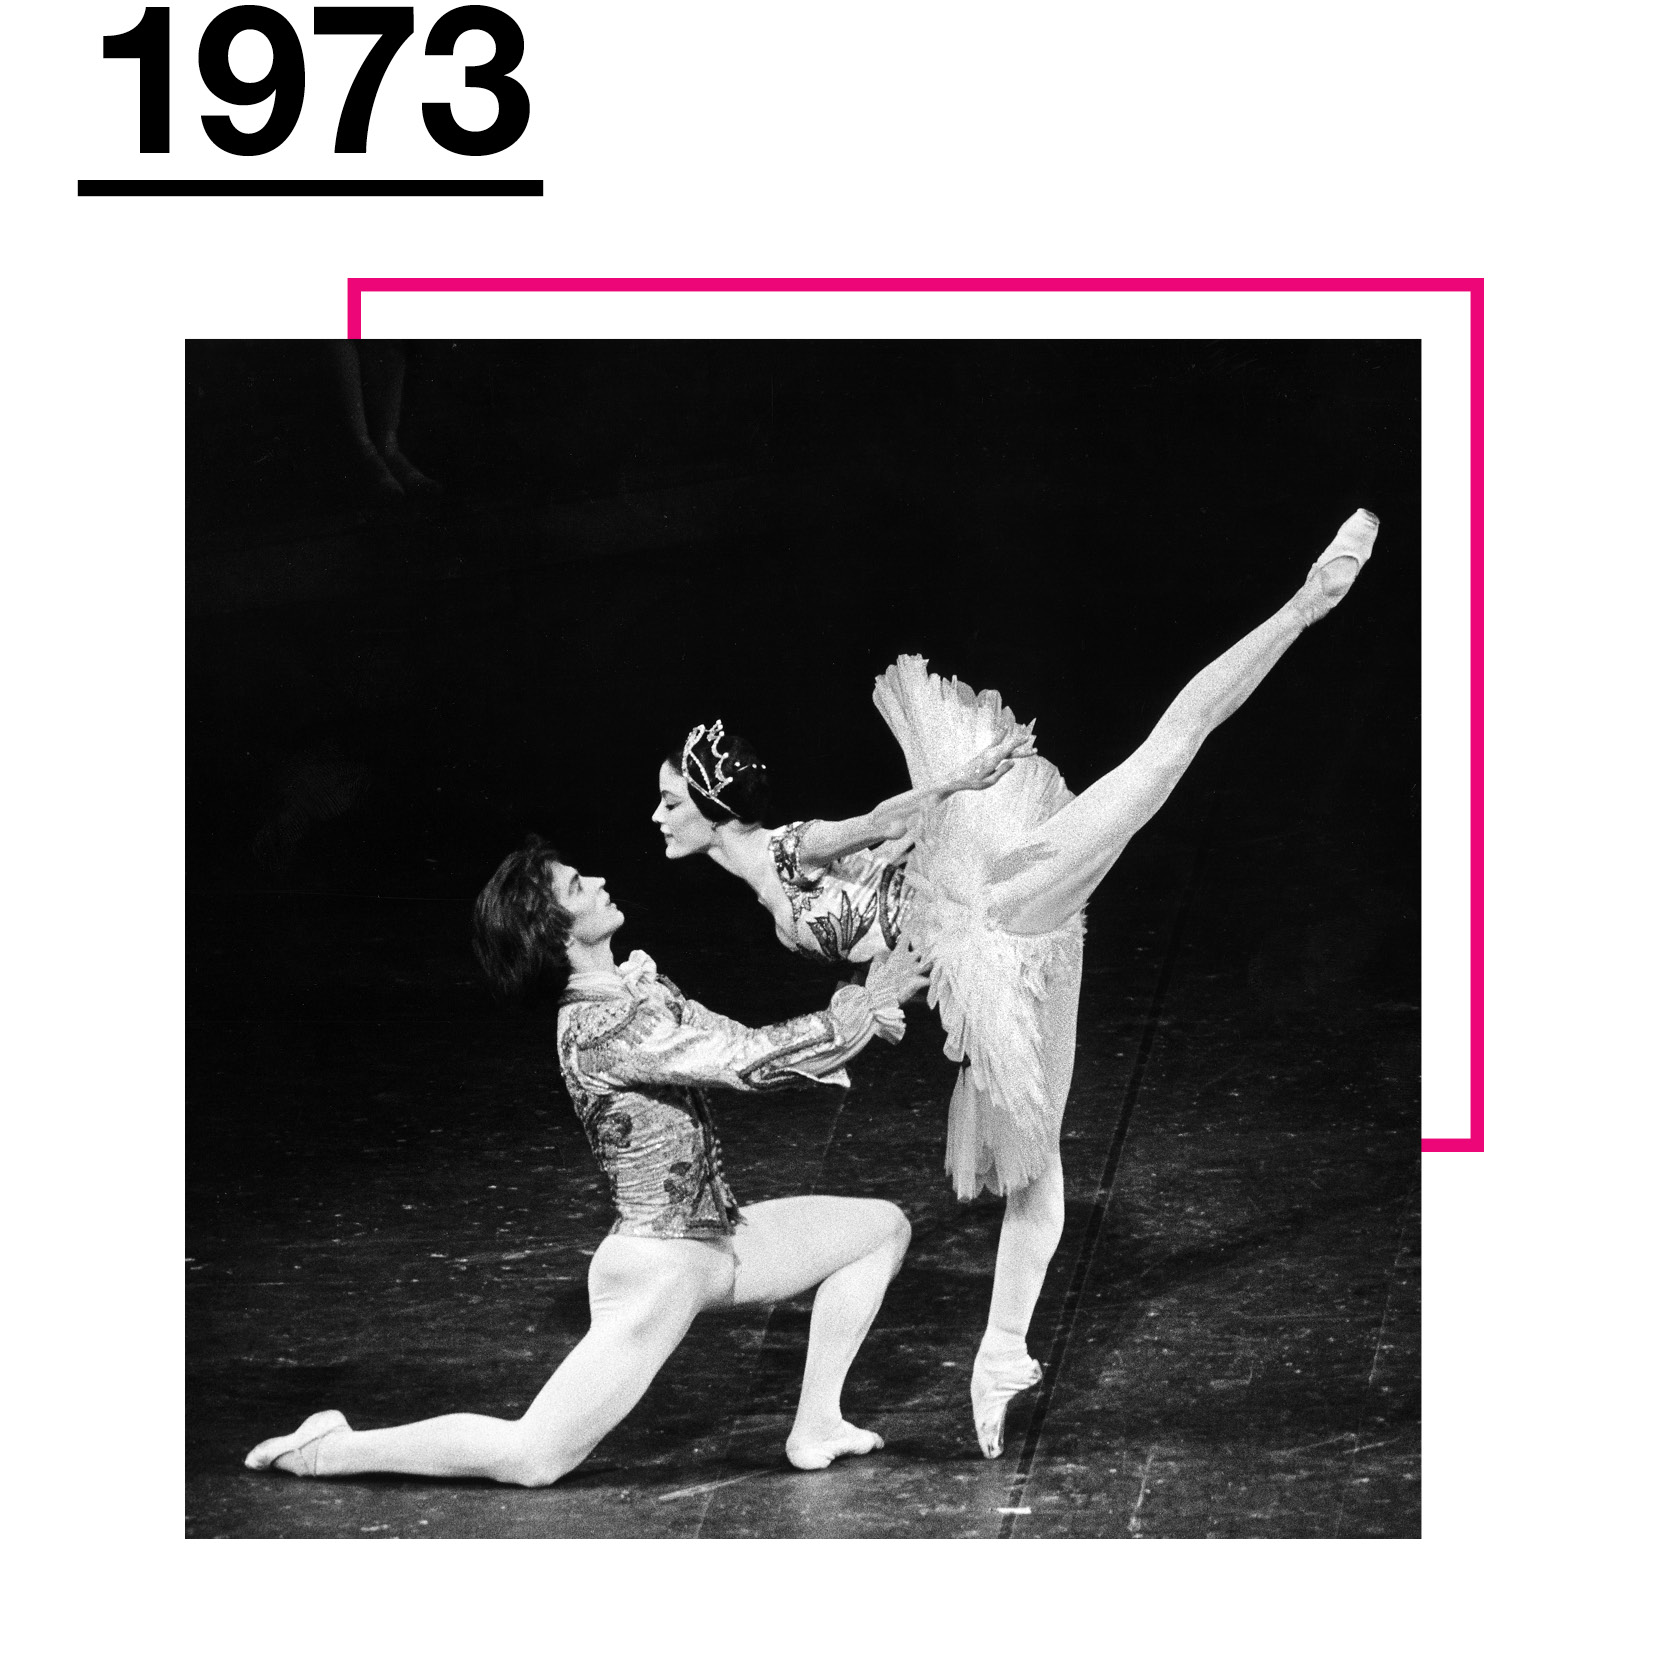 09945c4dbc32 Debuts in Swan Lake at the age of 19 while still a member of the Corps de  Ballet, replacing an injured Veronica Tennant and is promoted to Principal  Dancer.